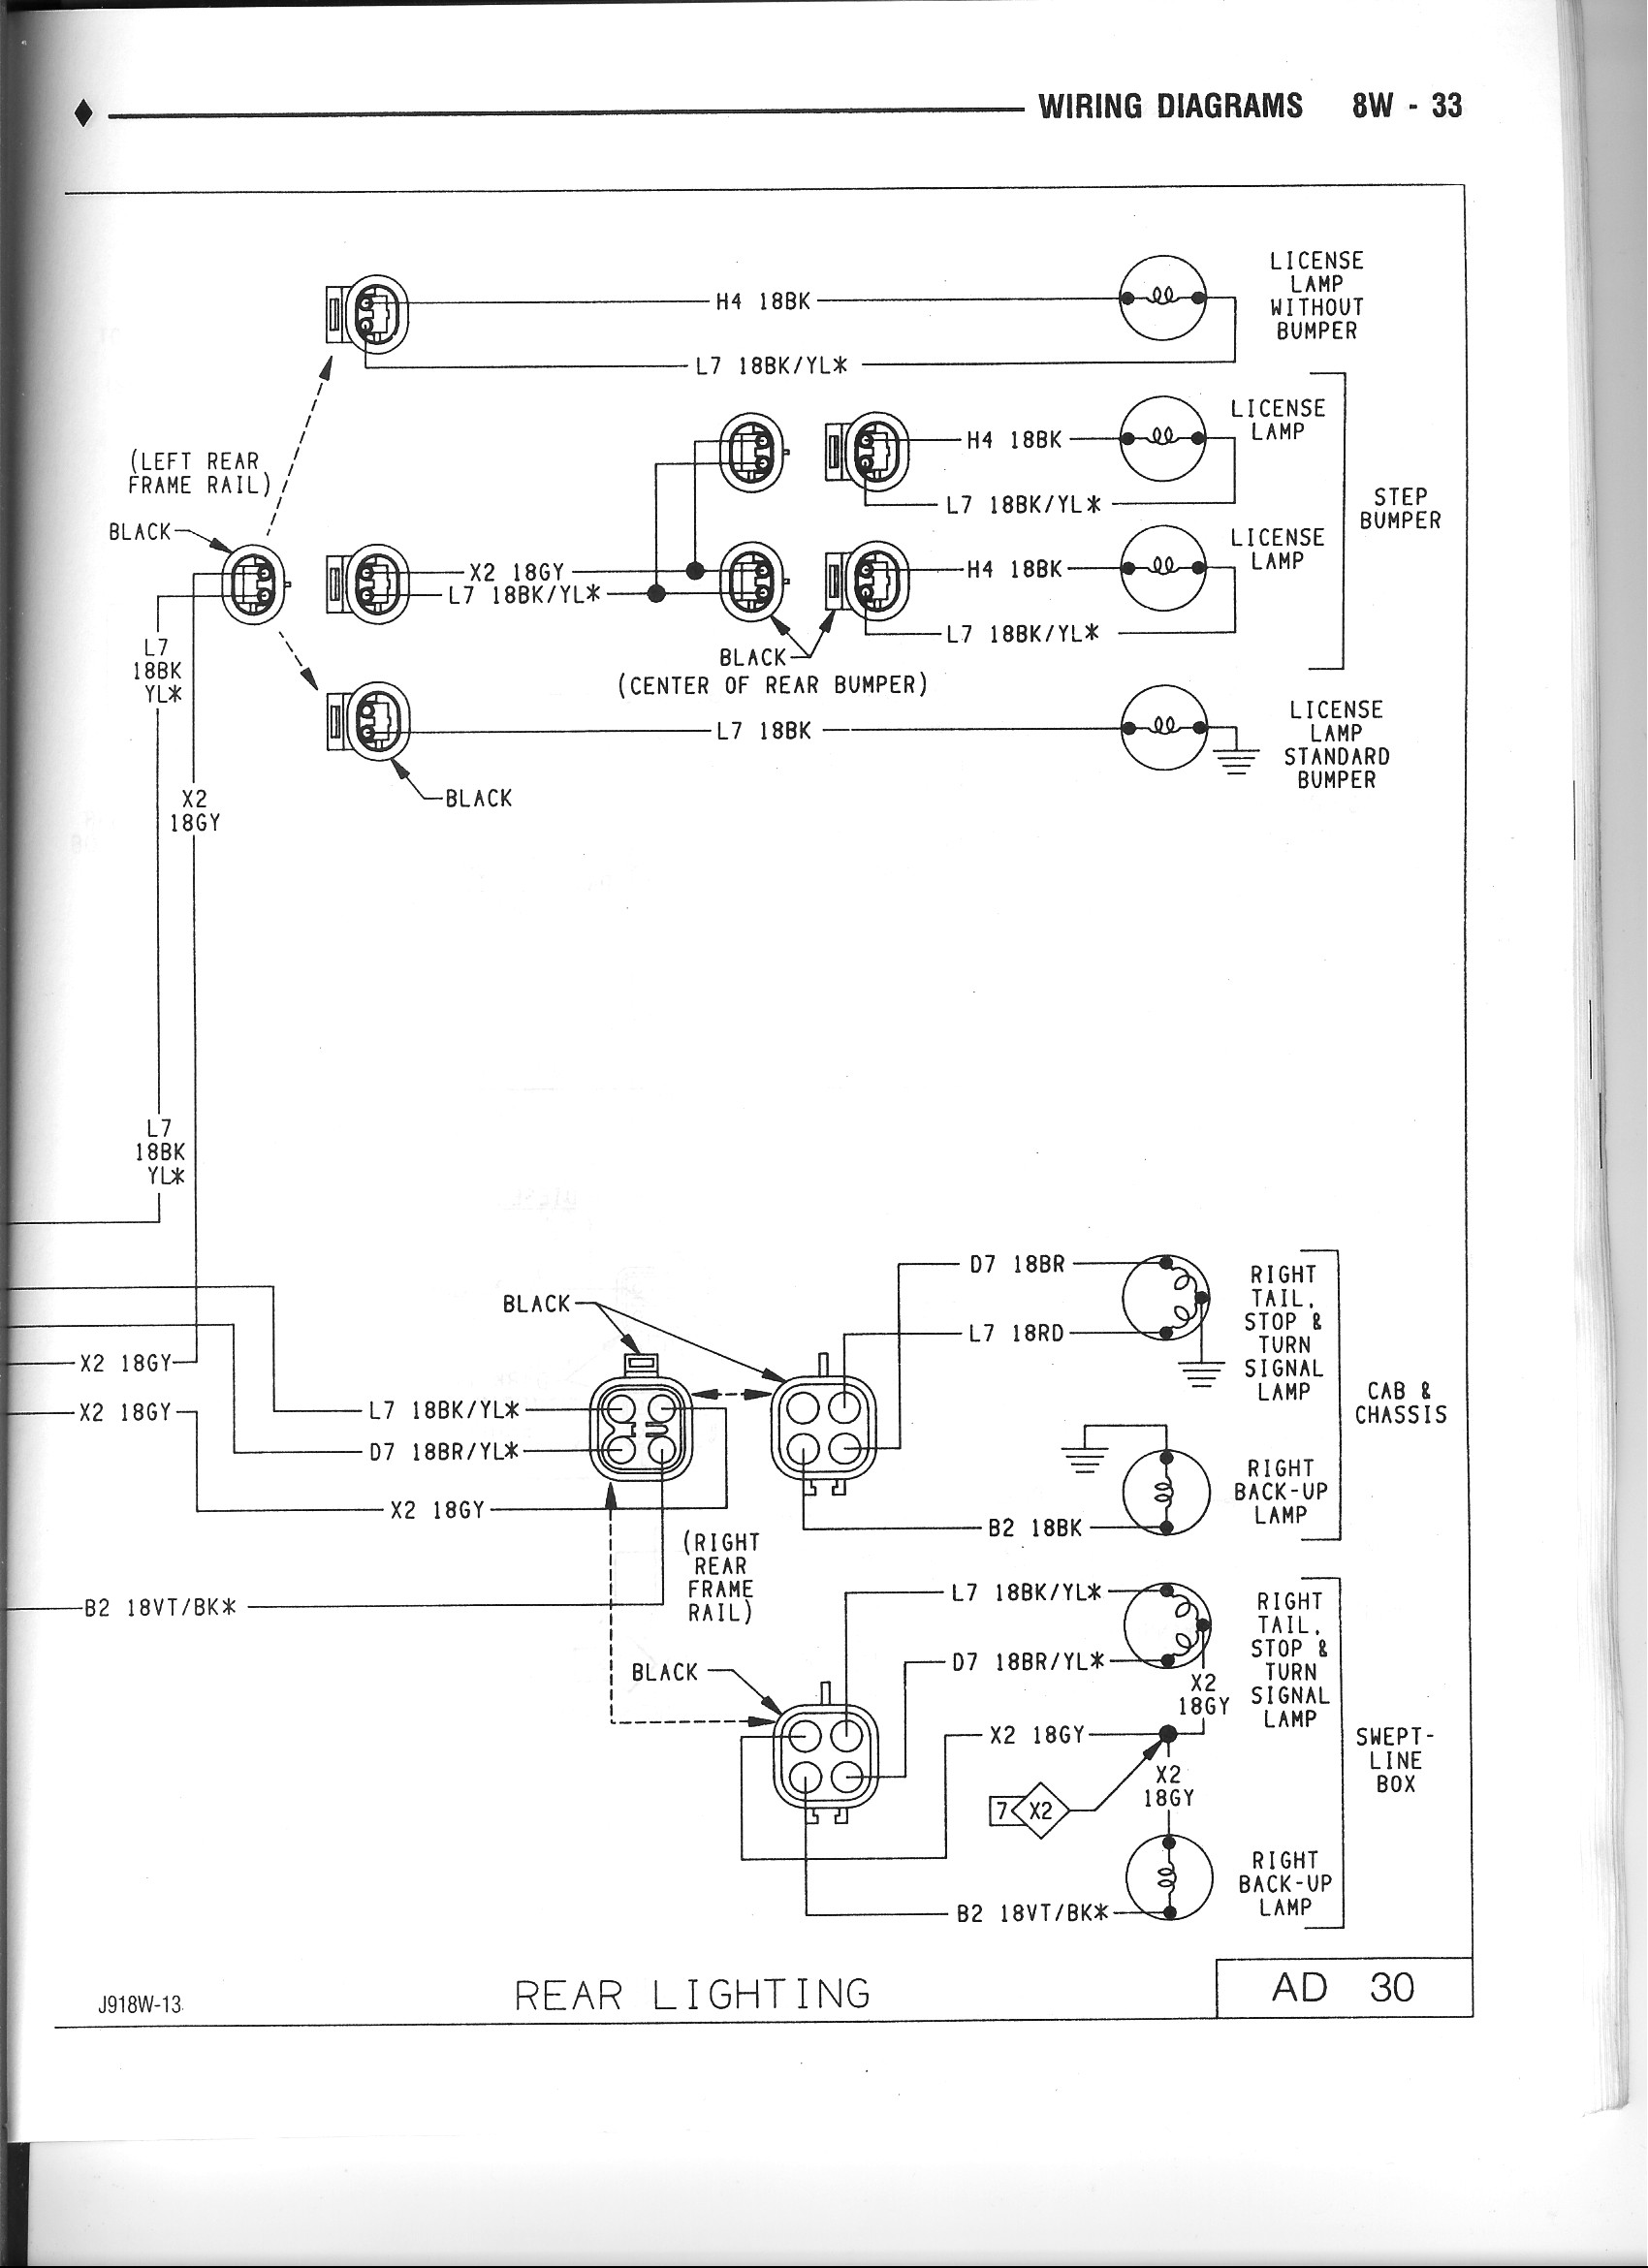 2006 Dodge Ram 2500 Wiring Diagram from dens-site.net